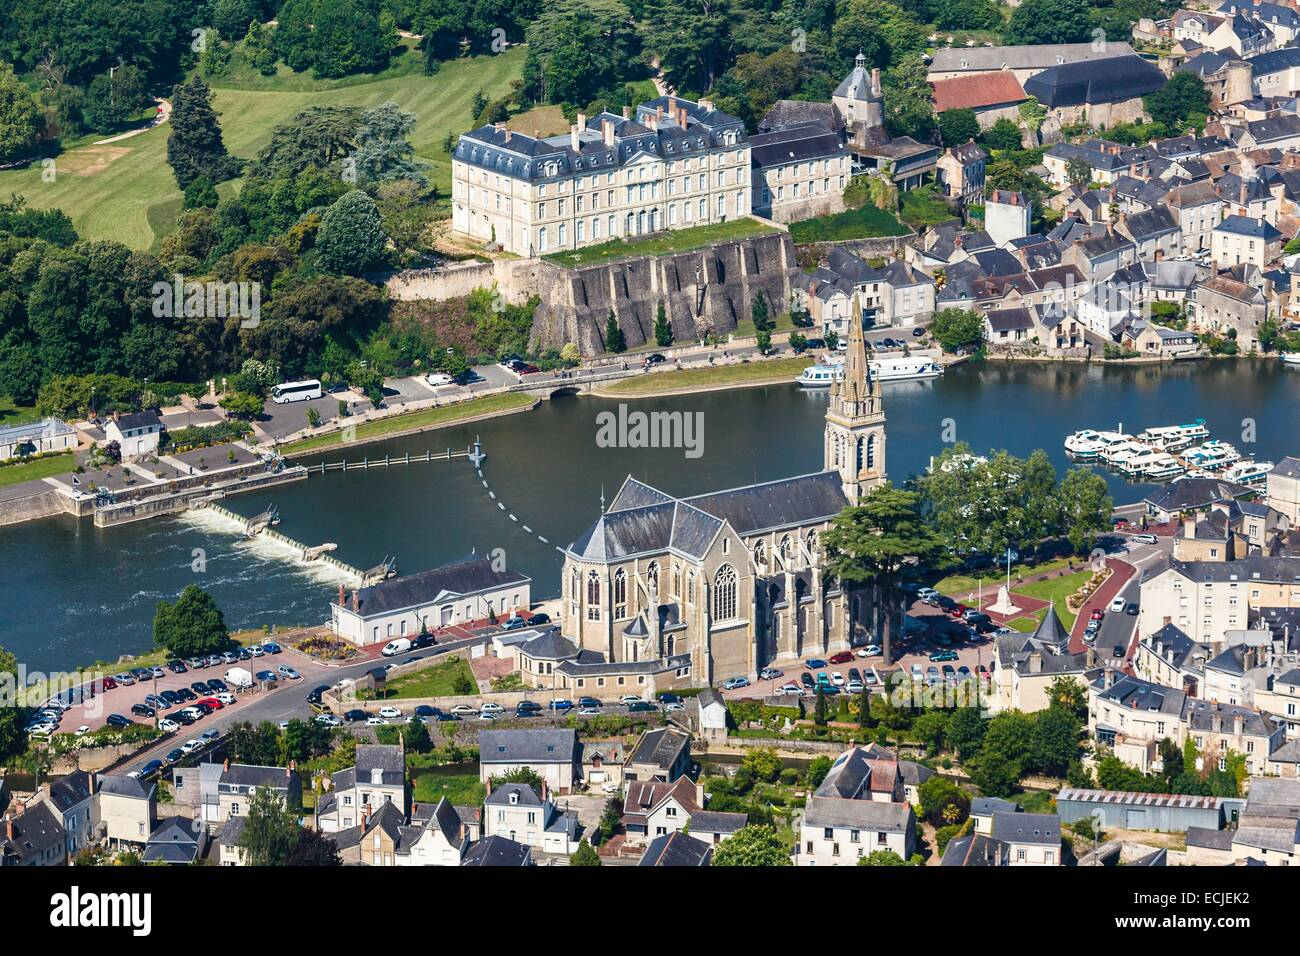 France, Sarthe, Sable sur Sarthe, the church and Sable castle near the Sathe river (aerial view) - Stock Image